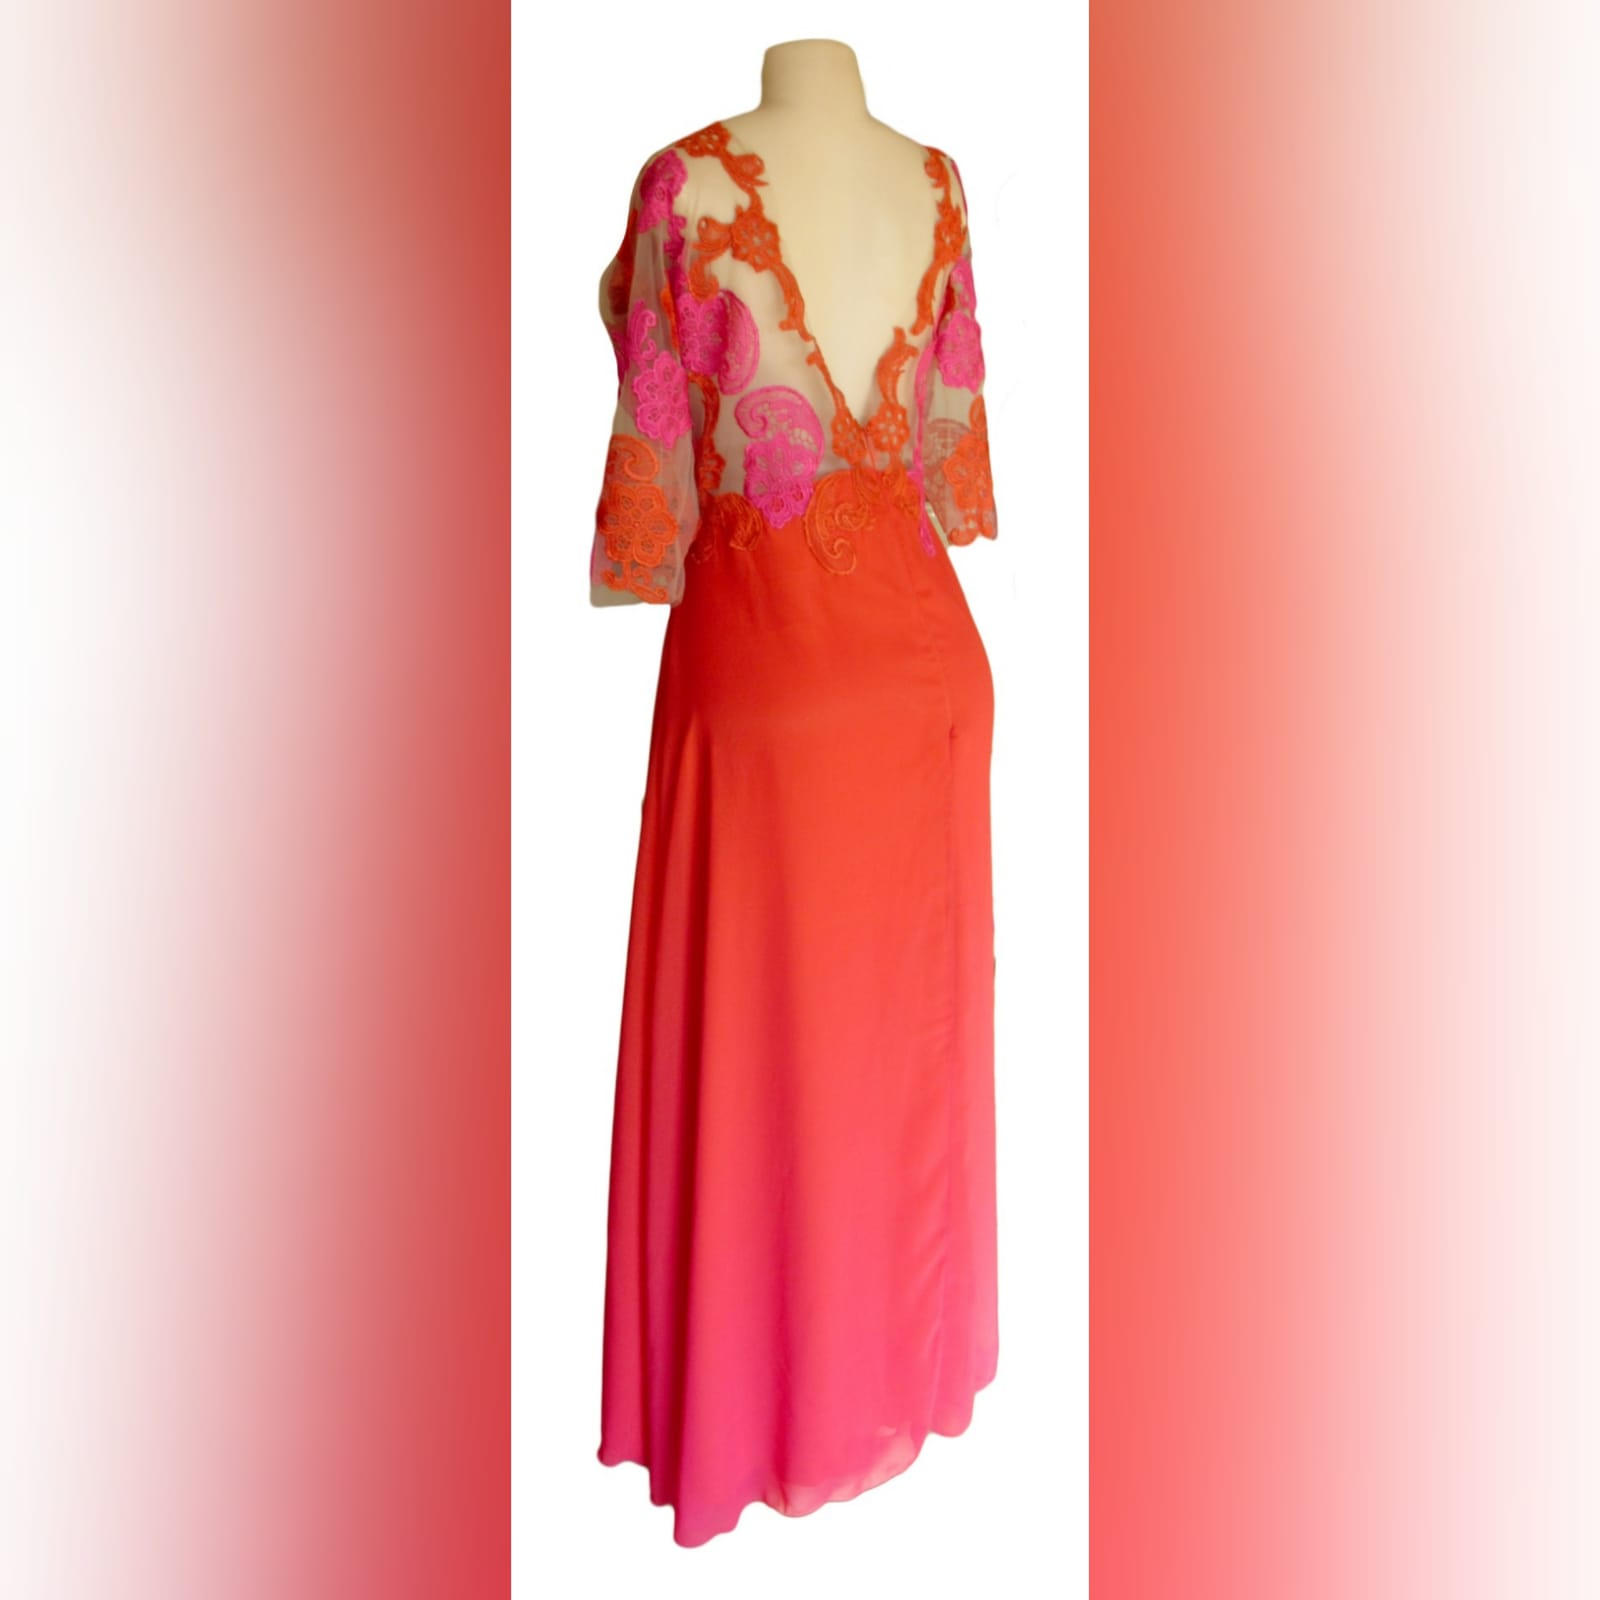 Orange & pink chiffon lace evening dress 5 orange & pink ombre long chiffon lace evening dress with a v illusion open back, 3/4 illusion lace sleeves.